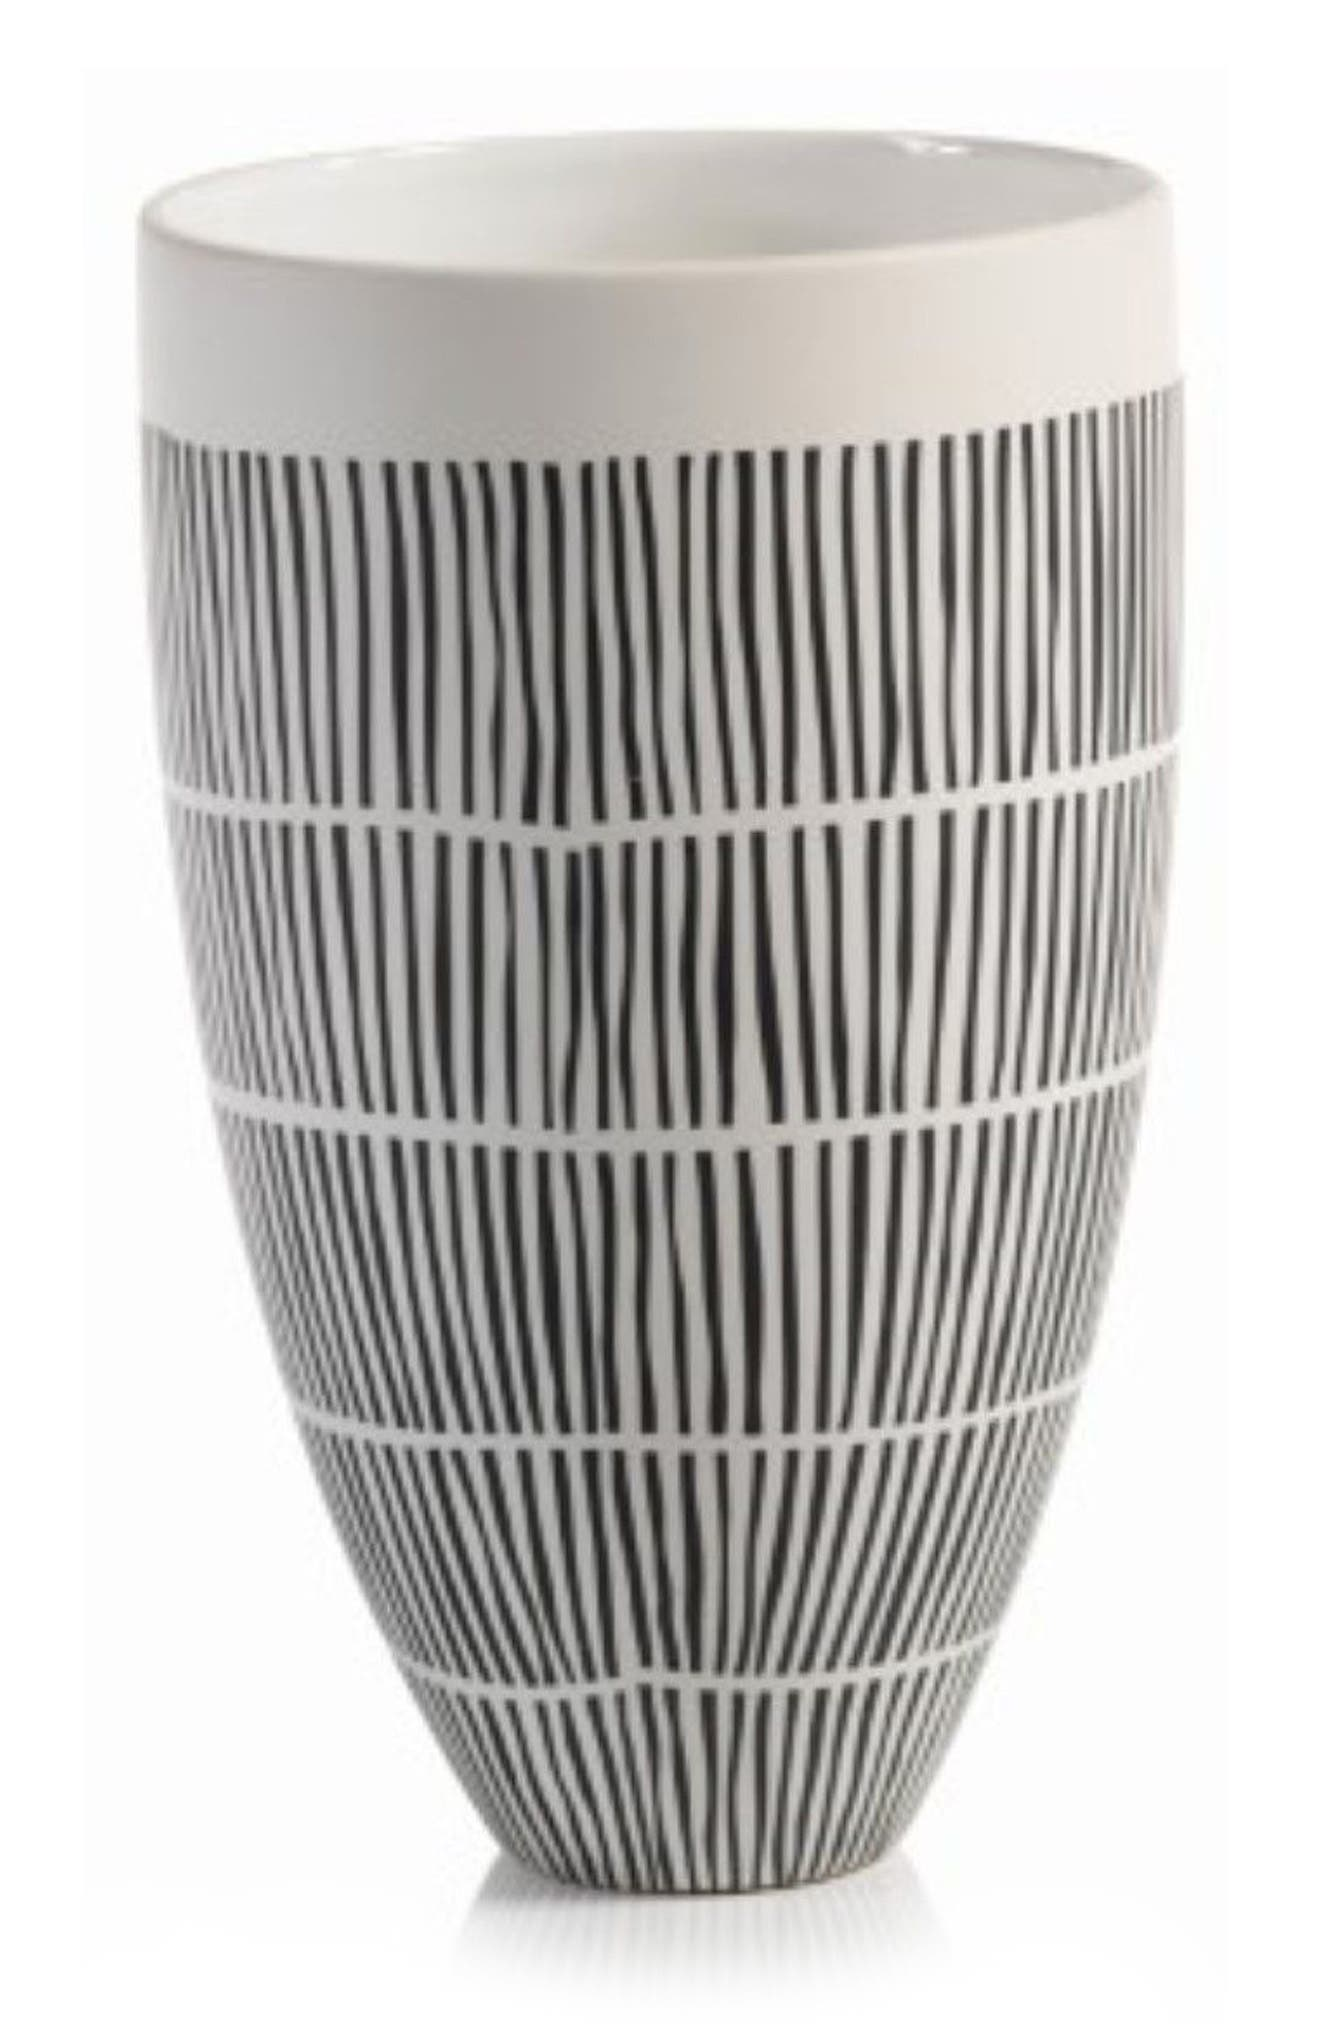 Marquesa Ceramic Vase,                             Main thumbnail 1, color,                             White/ Black